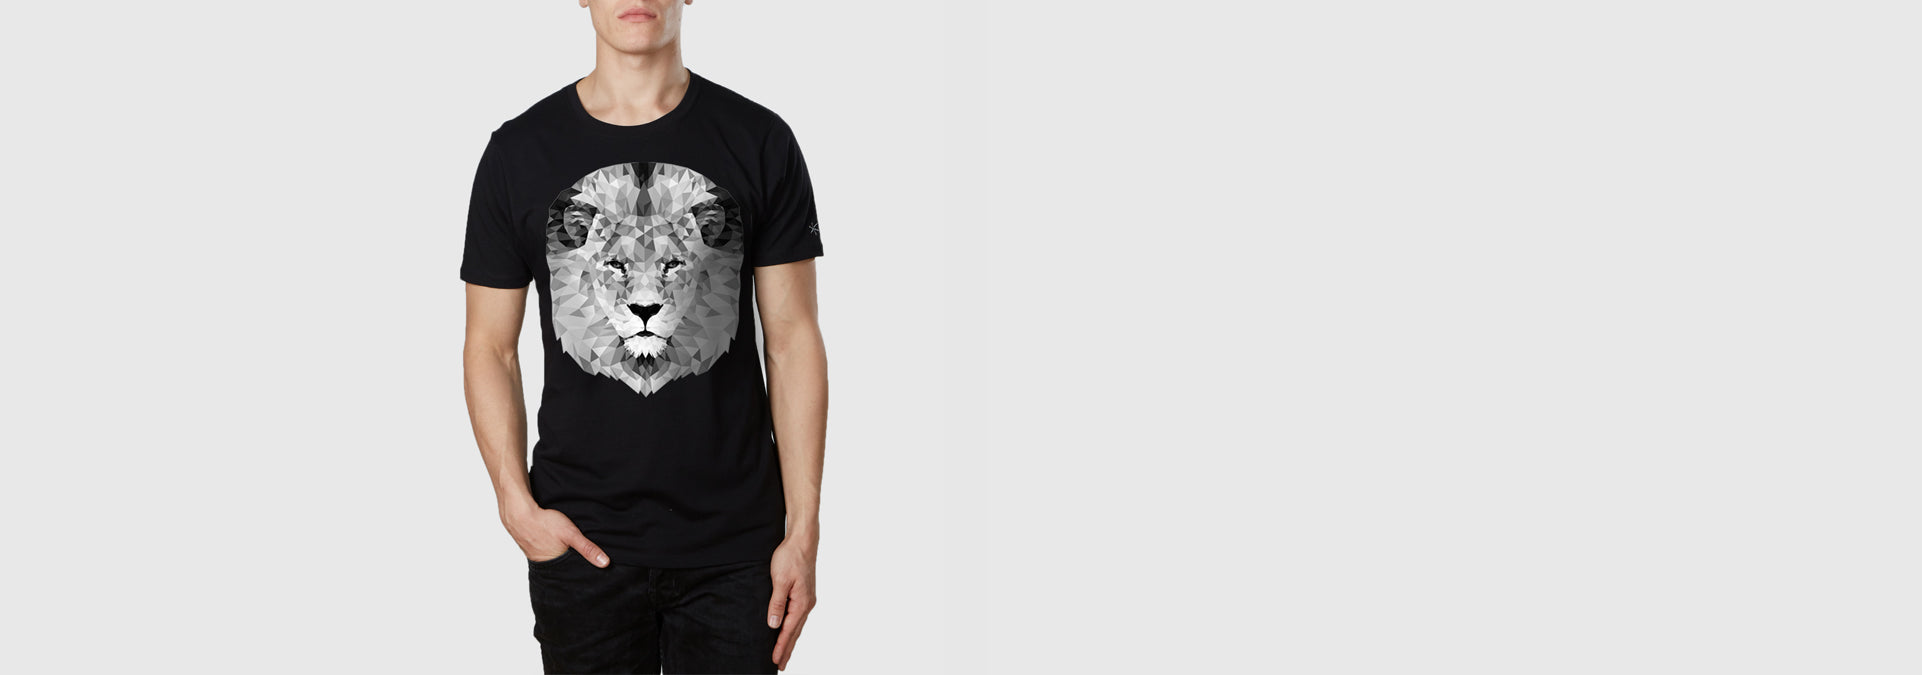 Mono Lion Organic Cotton T-Shirt Black